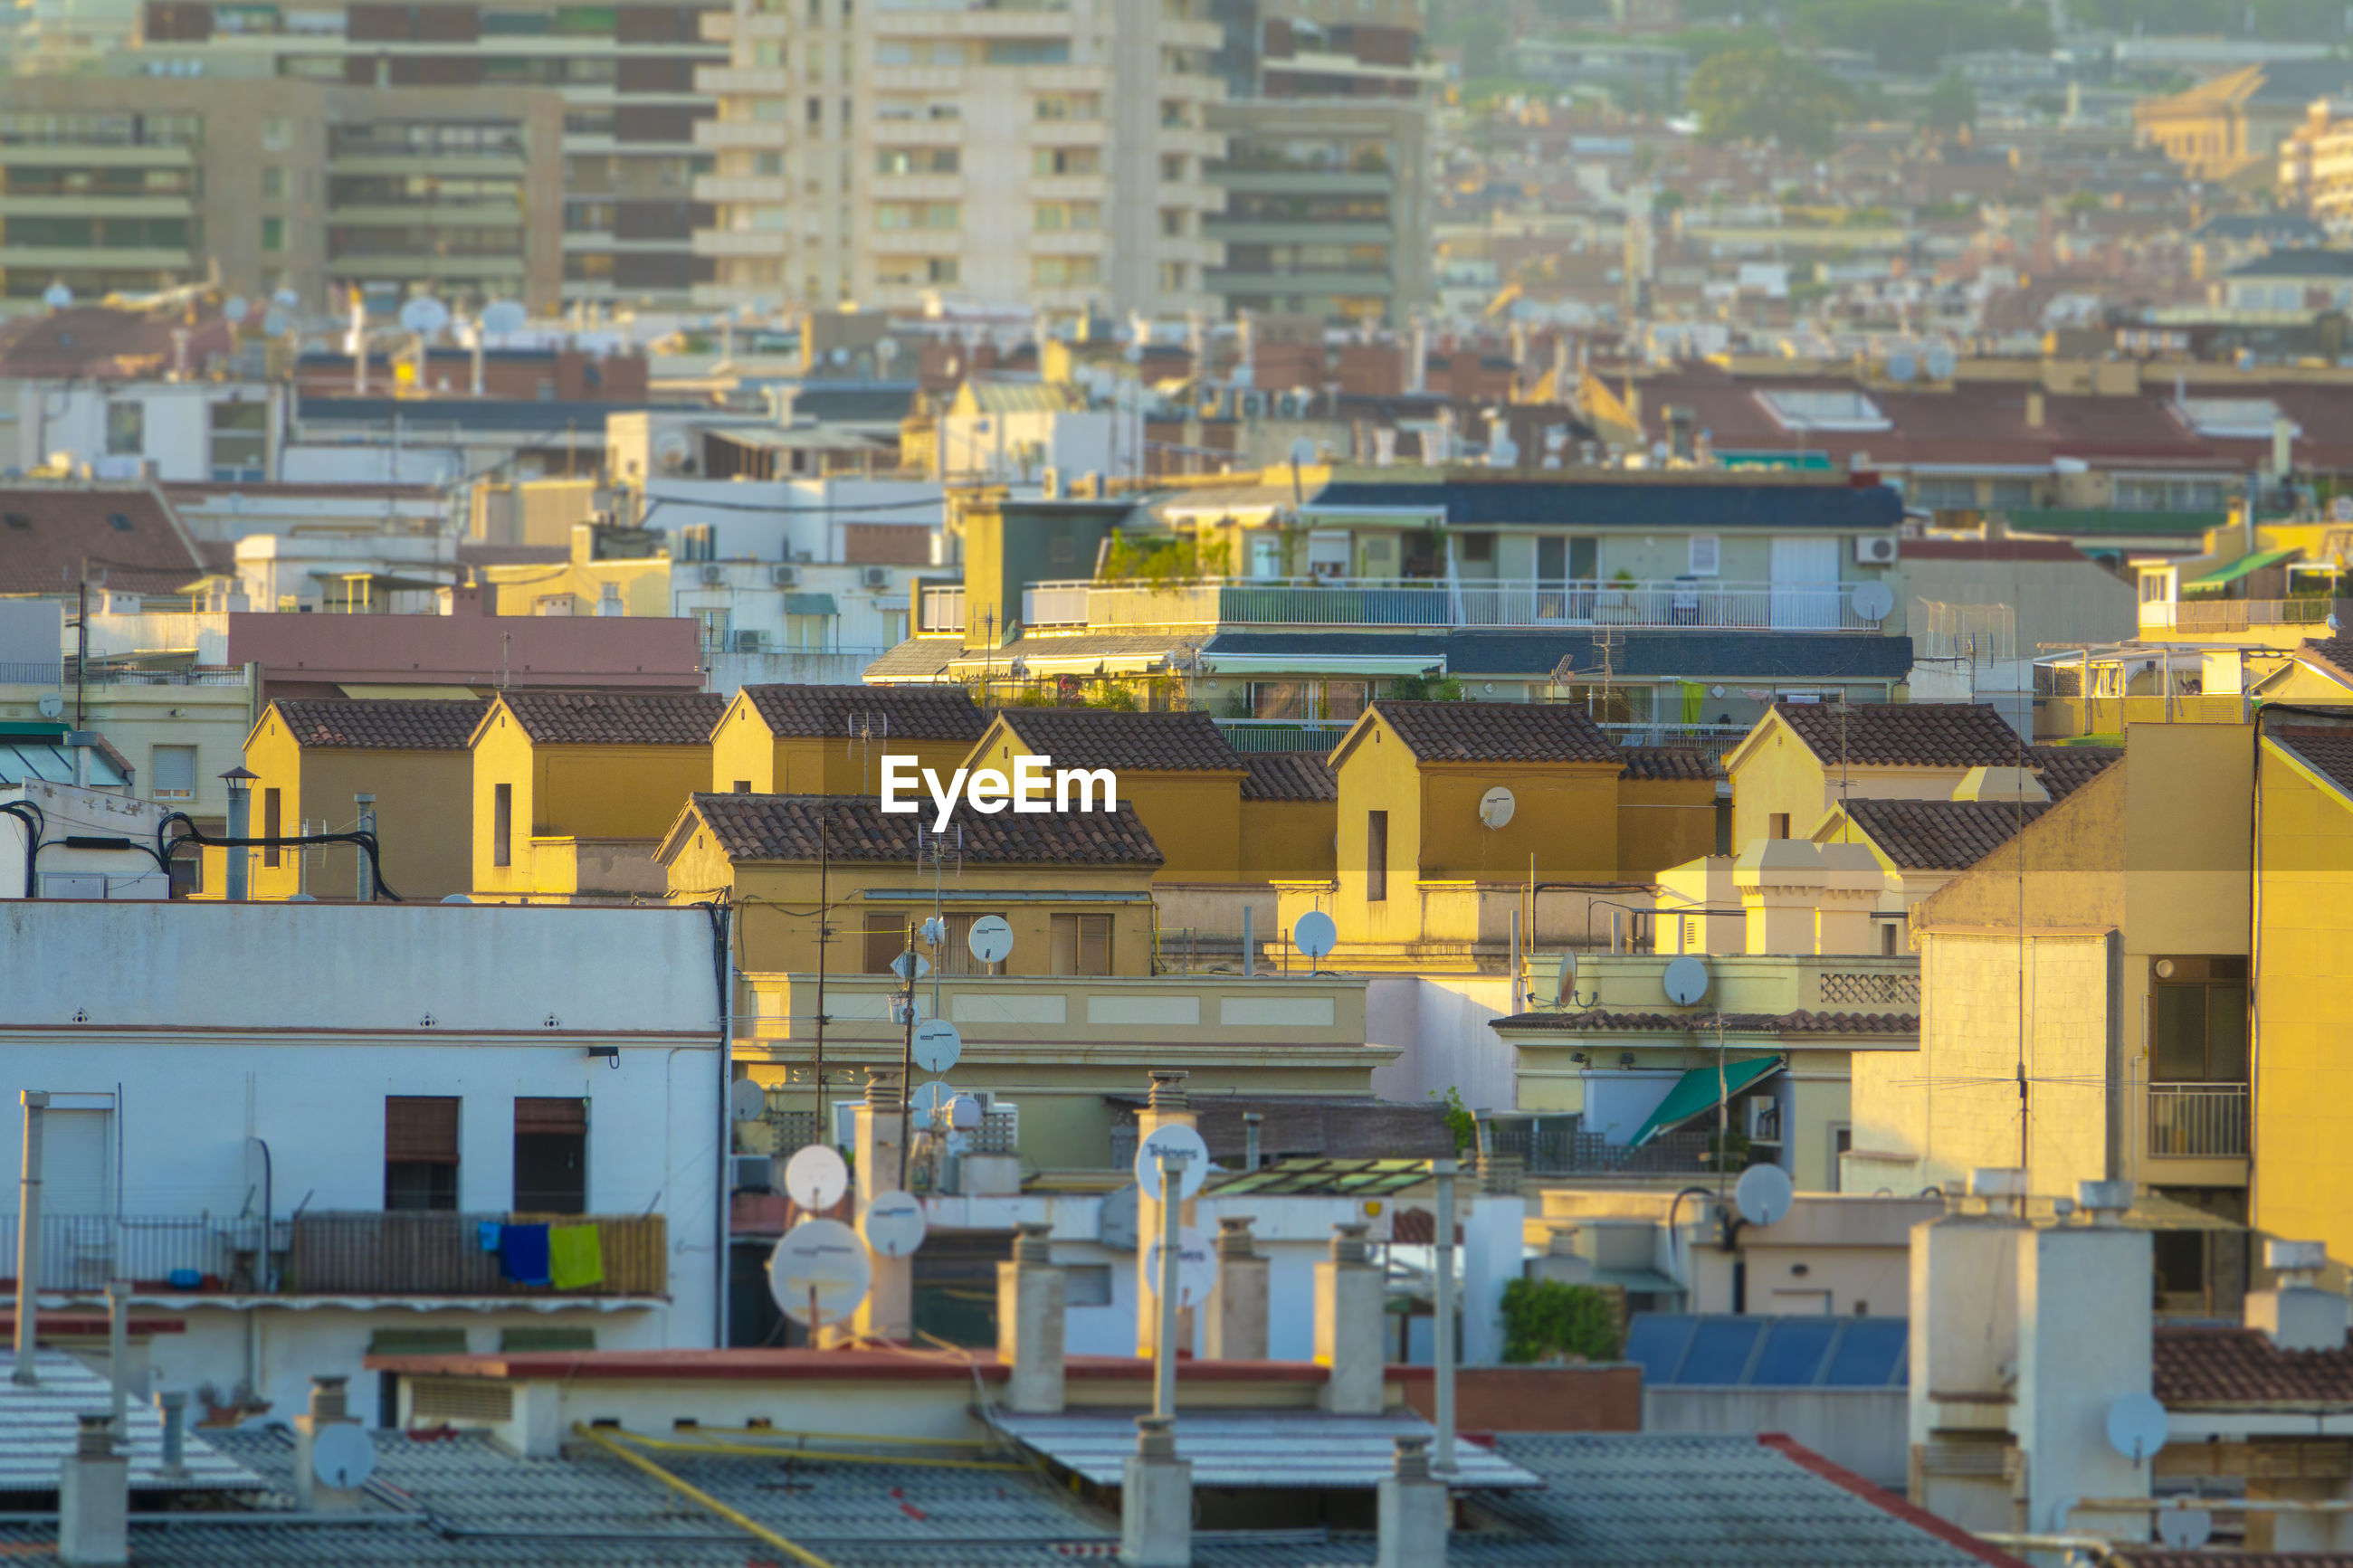 HIGH ANGLE VIEW OF YELLOW BUILDINGS IN CITY